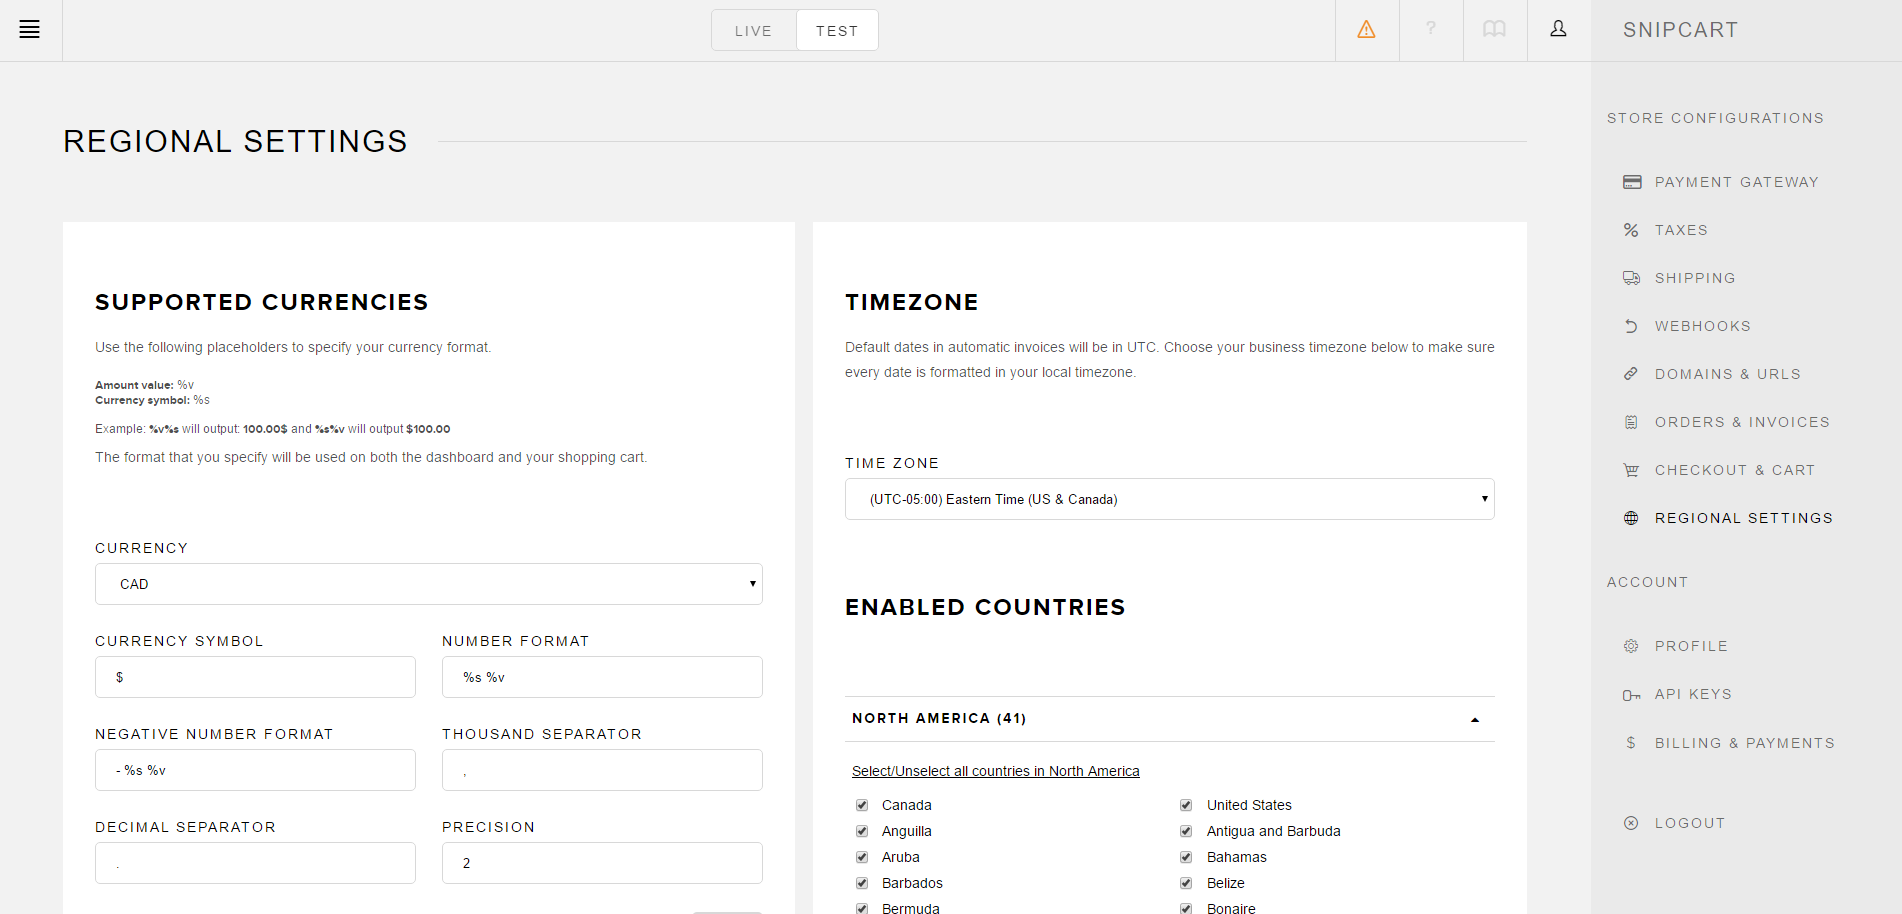 snipcart-docs-dashboard-regional-settings